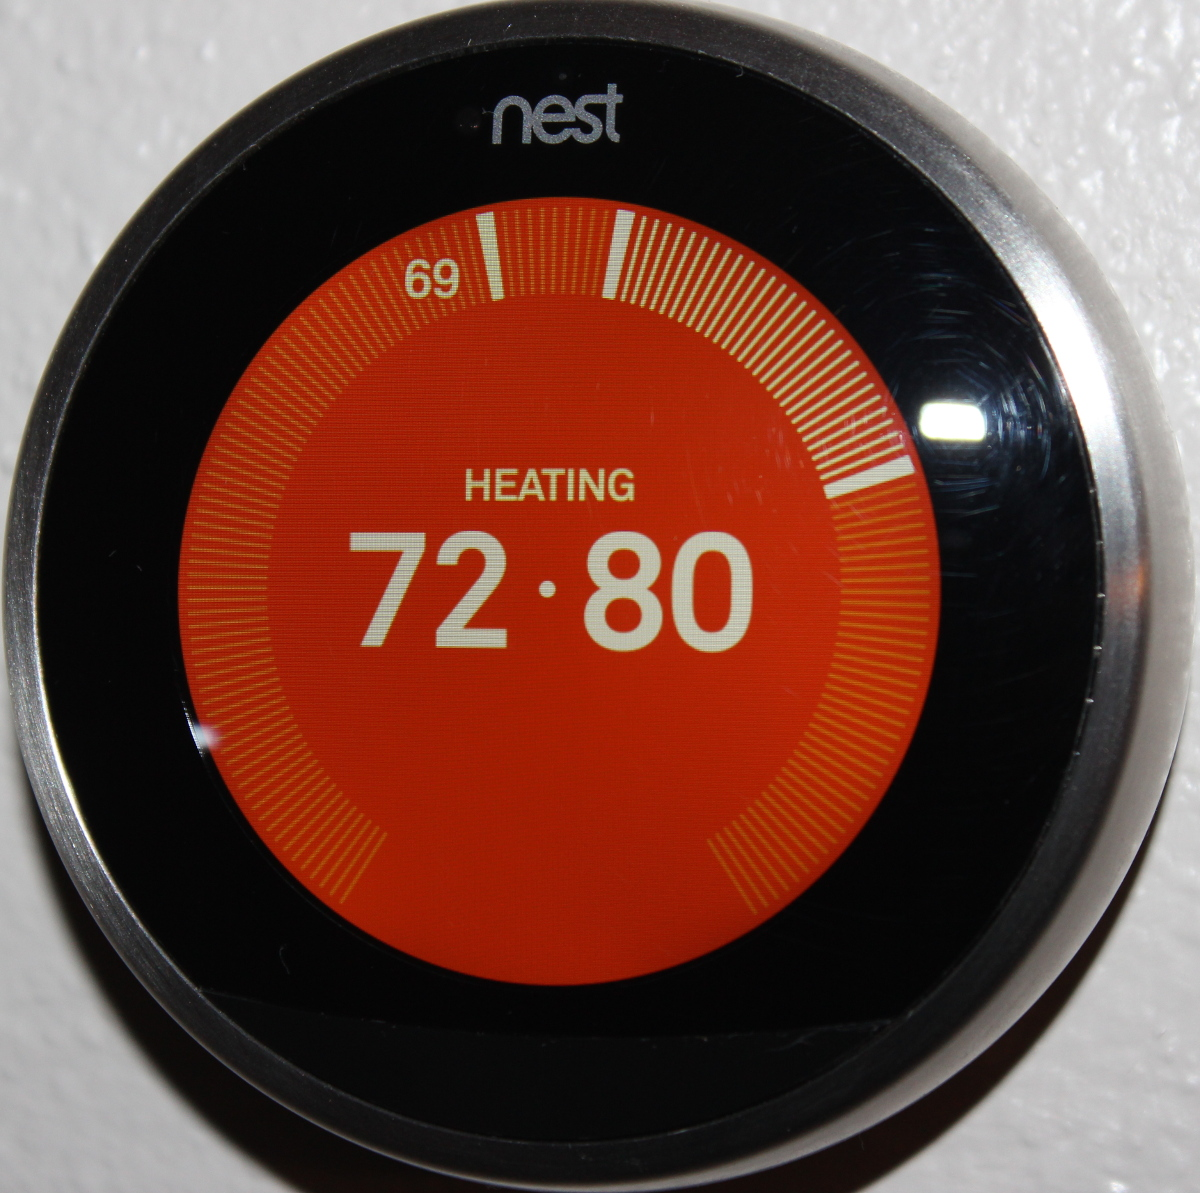 Nest 3rd Gen Learning Thermostat Review - Install, Setup, Apps and Web